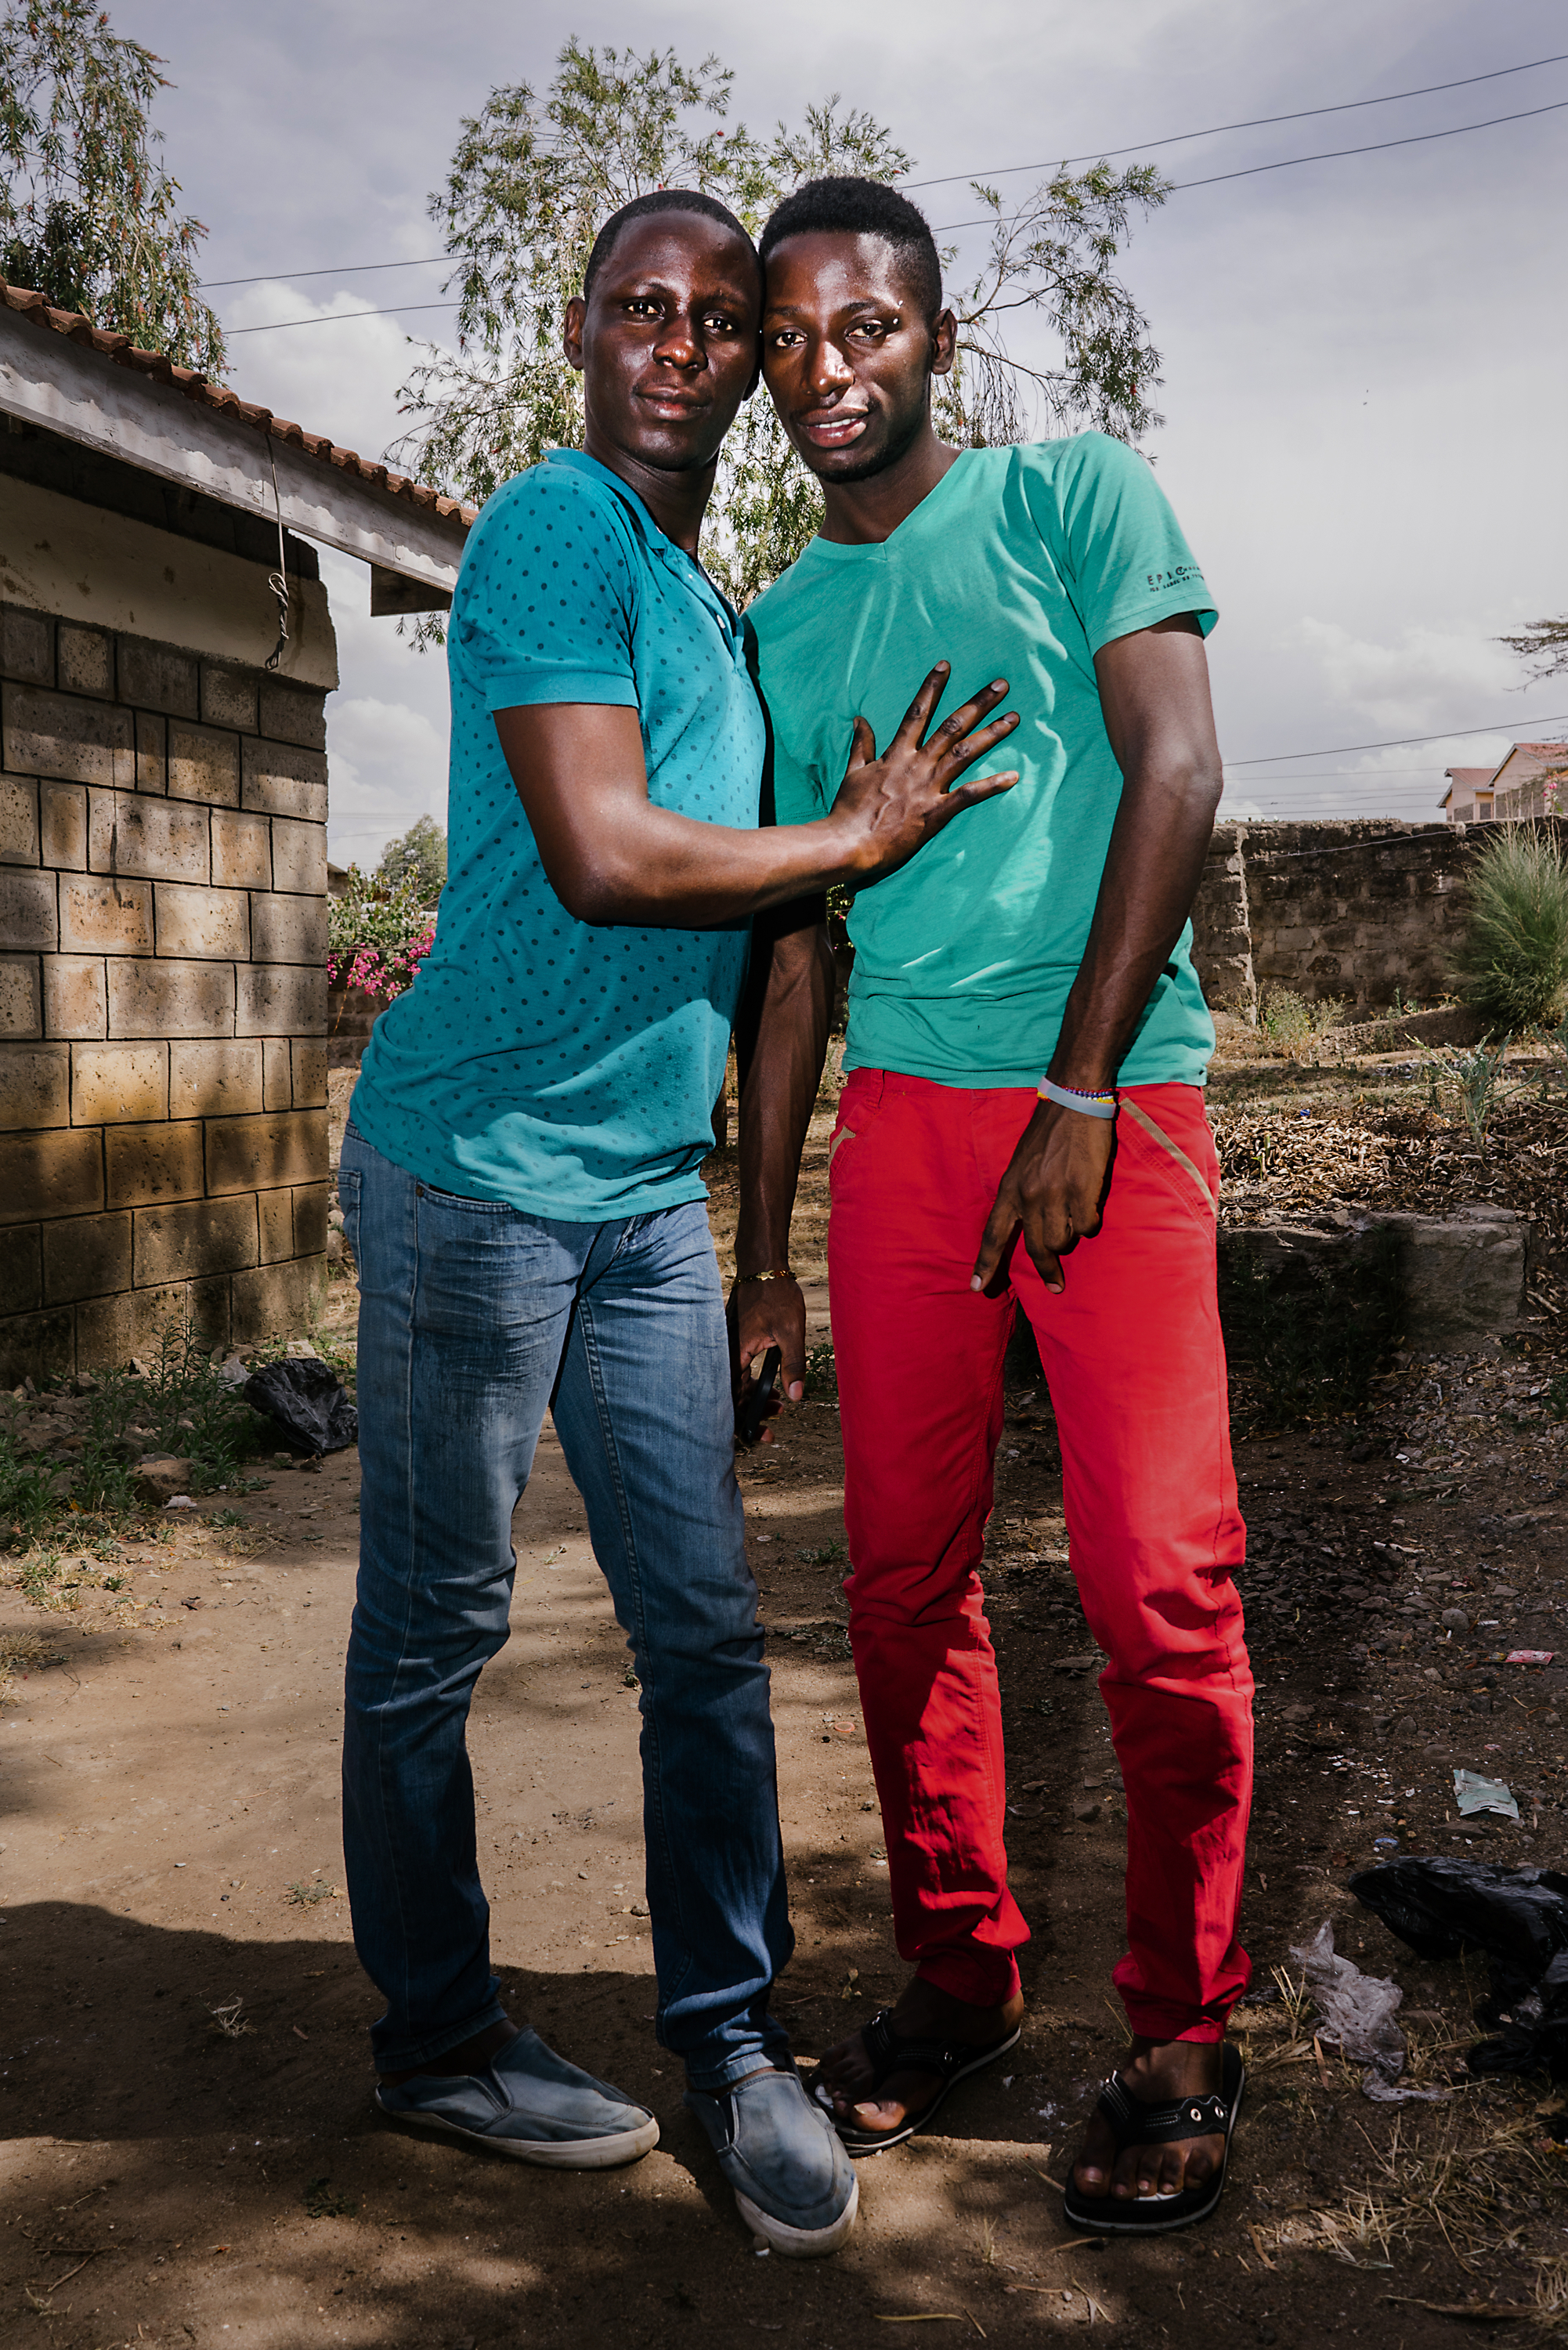 J. and Y., both LGBTQ refugees from Uganda, pose for a portrait outside the home they lived in in a town just outside of Nairobi, Kenya. More than a dozen LGBTQ refugees from Uganda had gathered together in this house for safety and camaraderie, but after a few months, the house had to be evacuated due to threats from neighbors and the police, according to residents of the house.